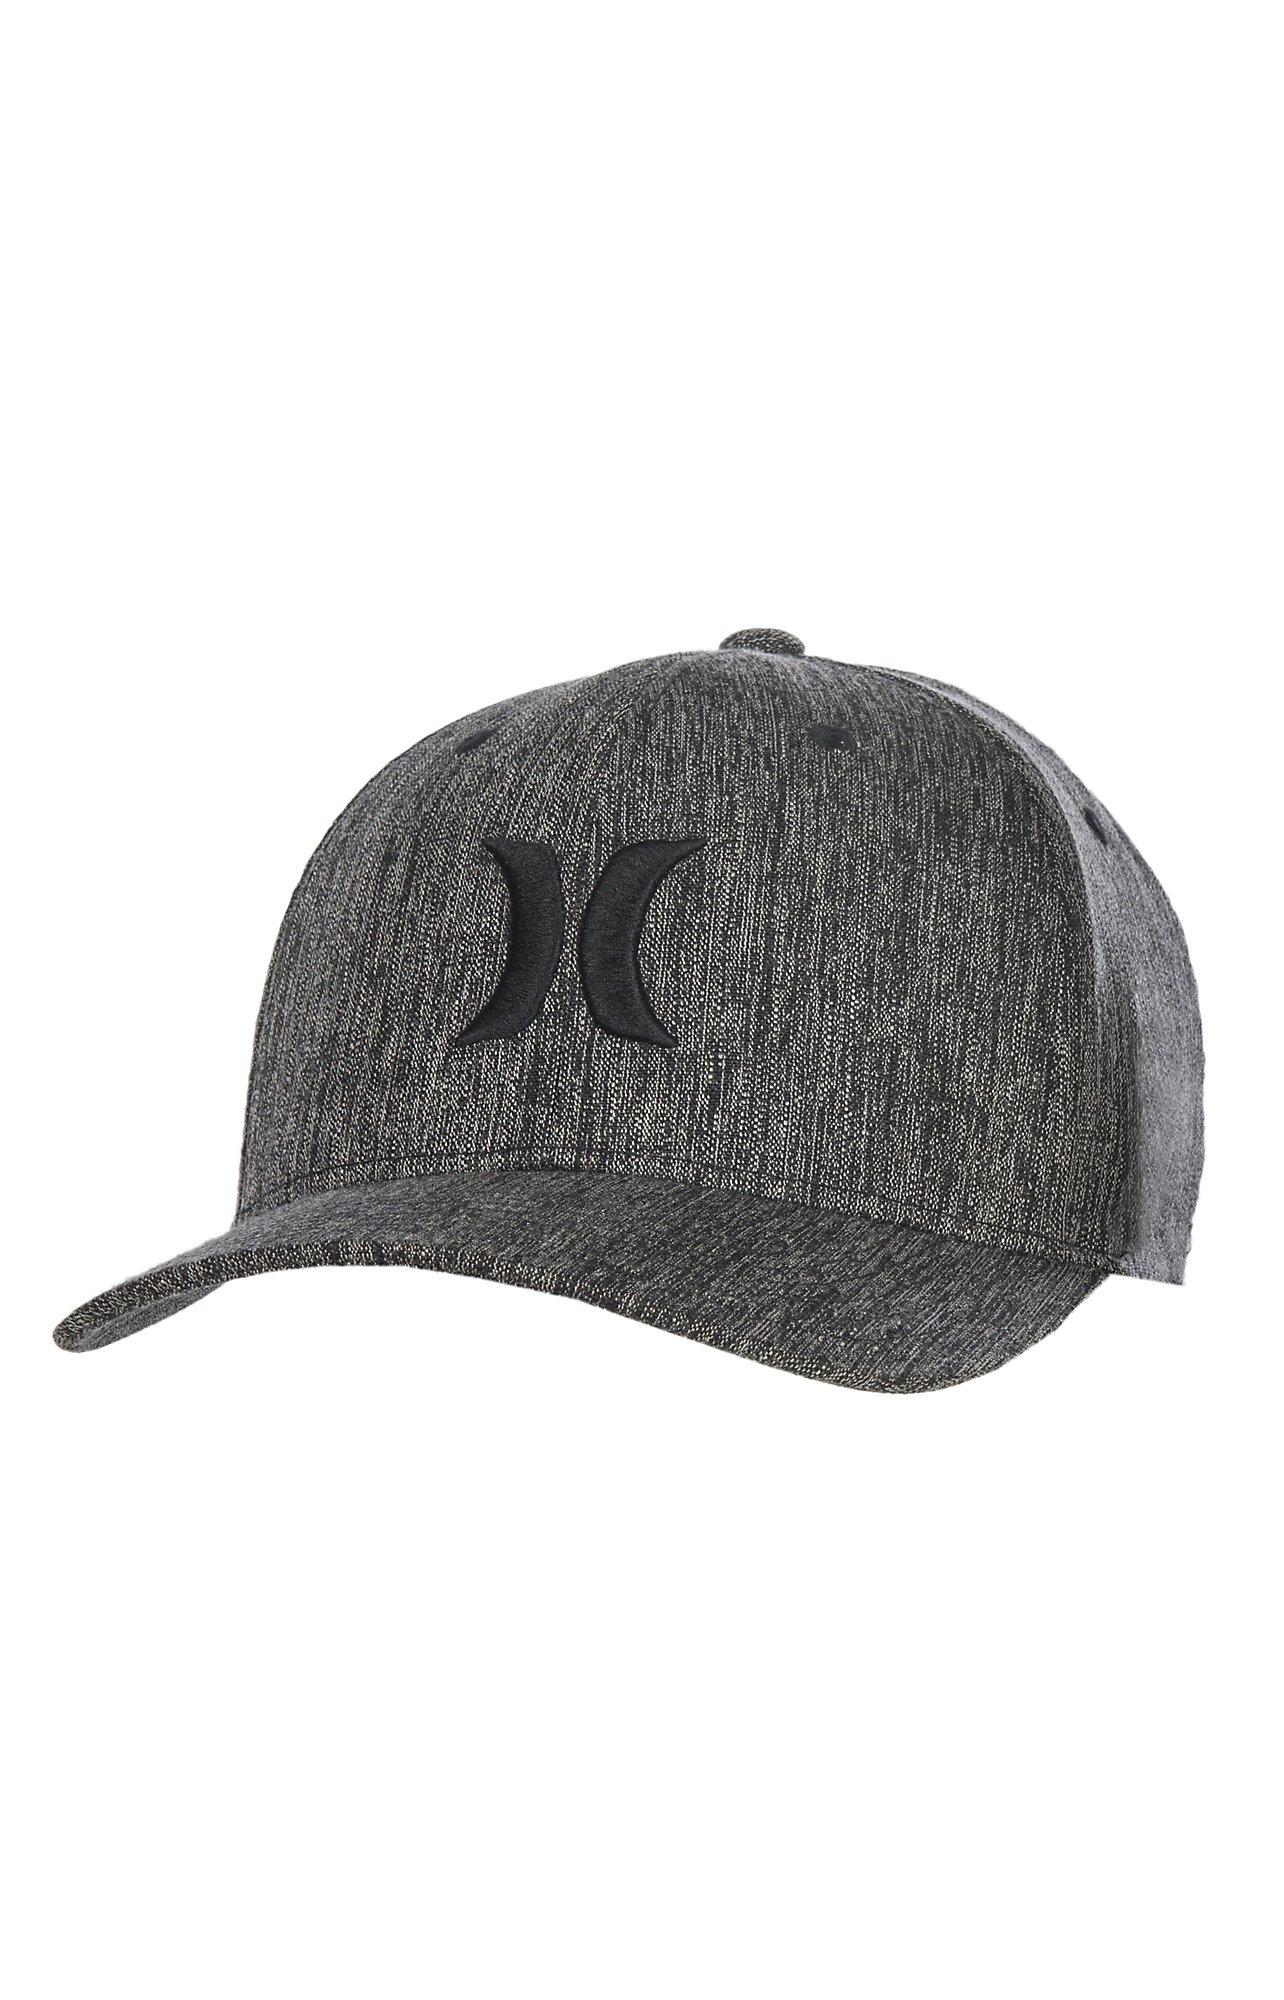 Hurley Dri-Fit One and Only Black FlexFit Cap  58e6776fbe1